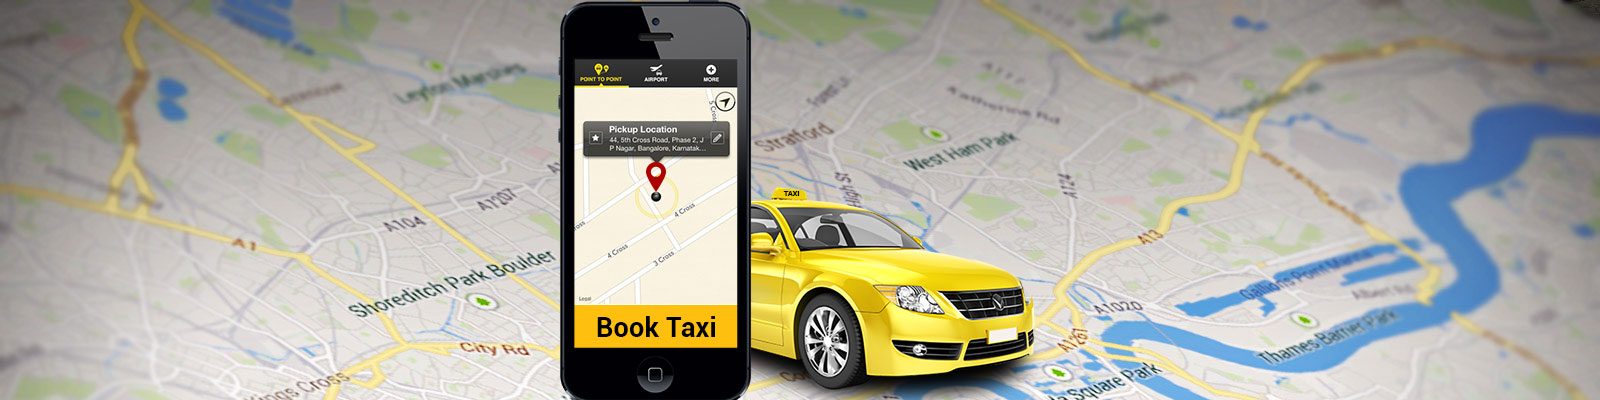 taxi booking mobile app